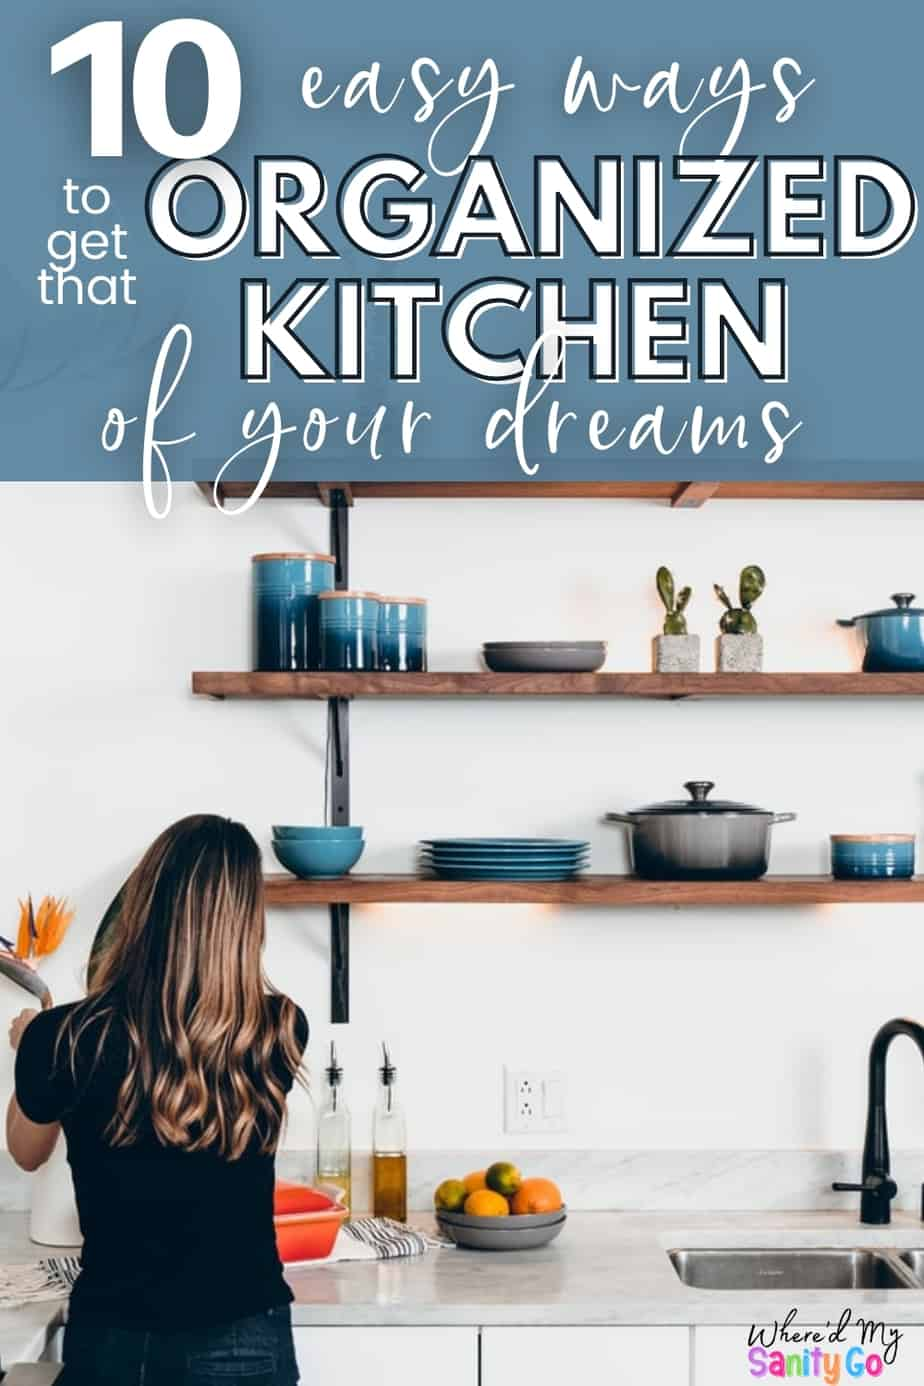 clean white and blue kitchen with open shelving and woman's back with with text 10 easy ways to get that organized kitchen of your dreams